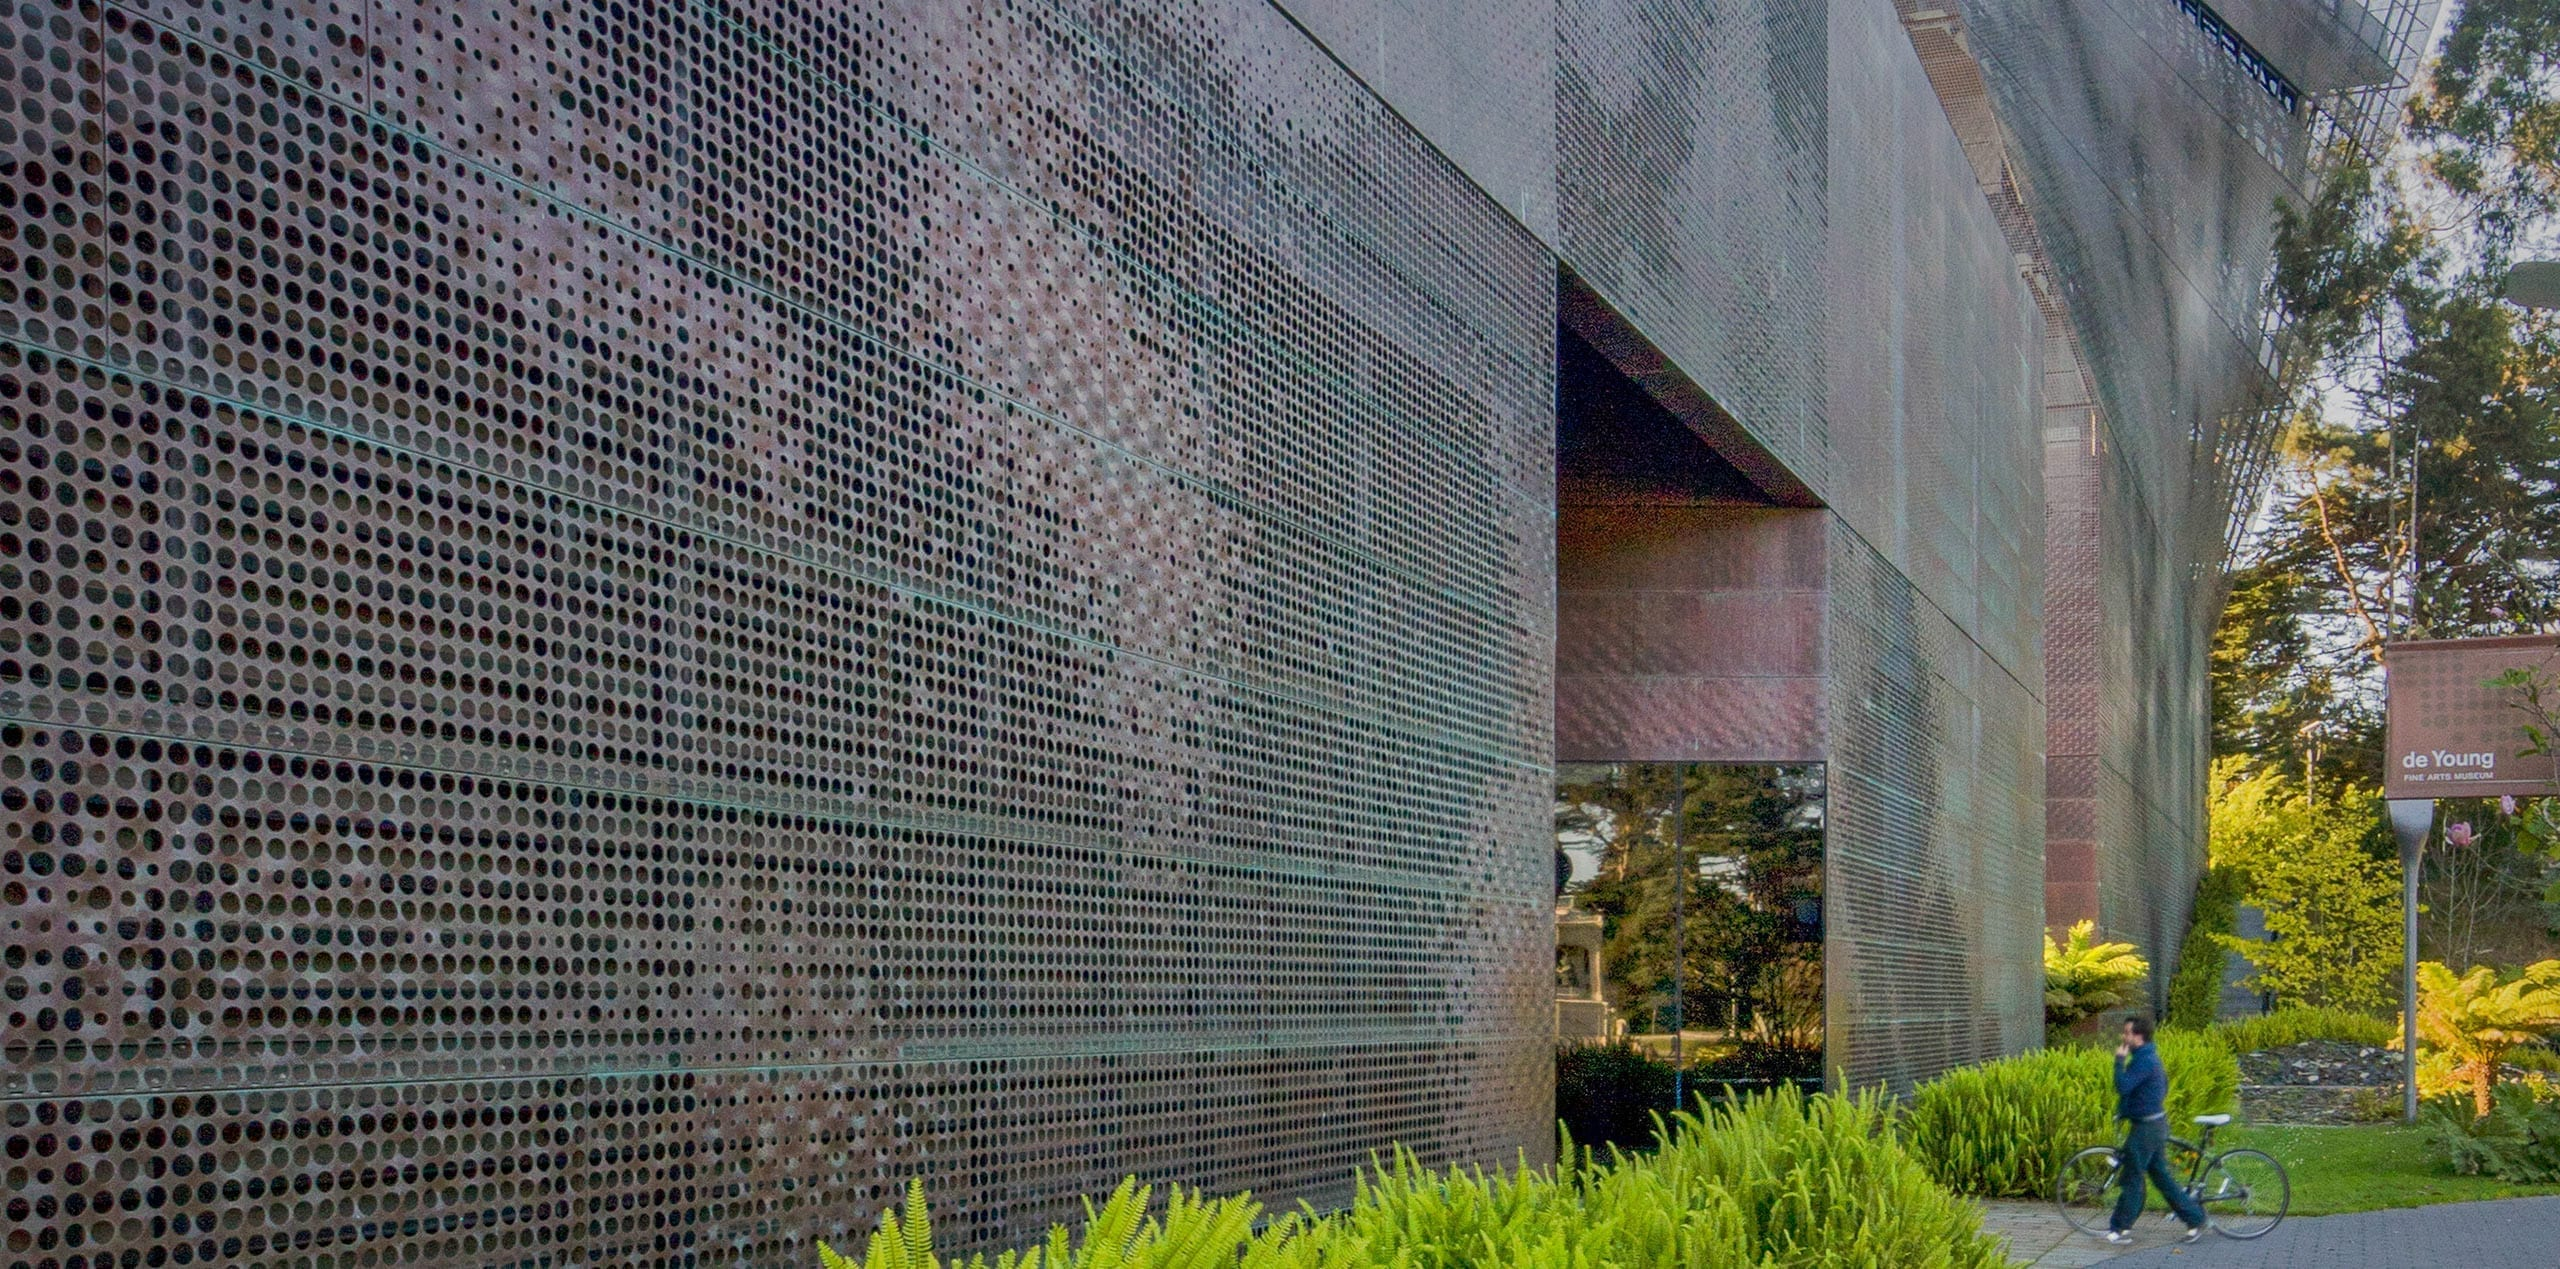 The de Young Museum in California, early example of digitally defined picture perforated metal.